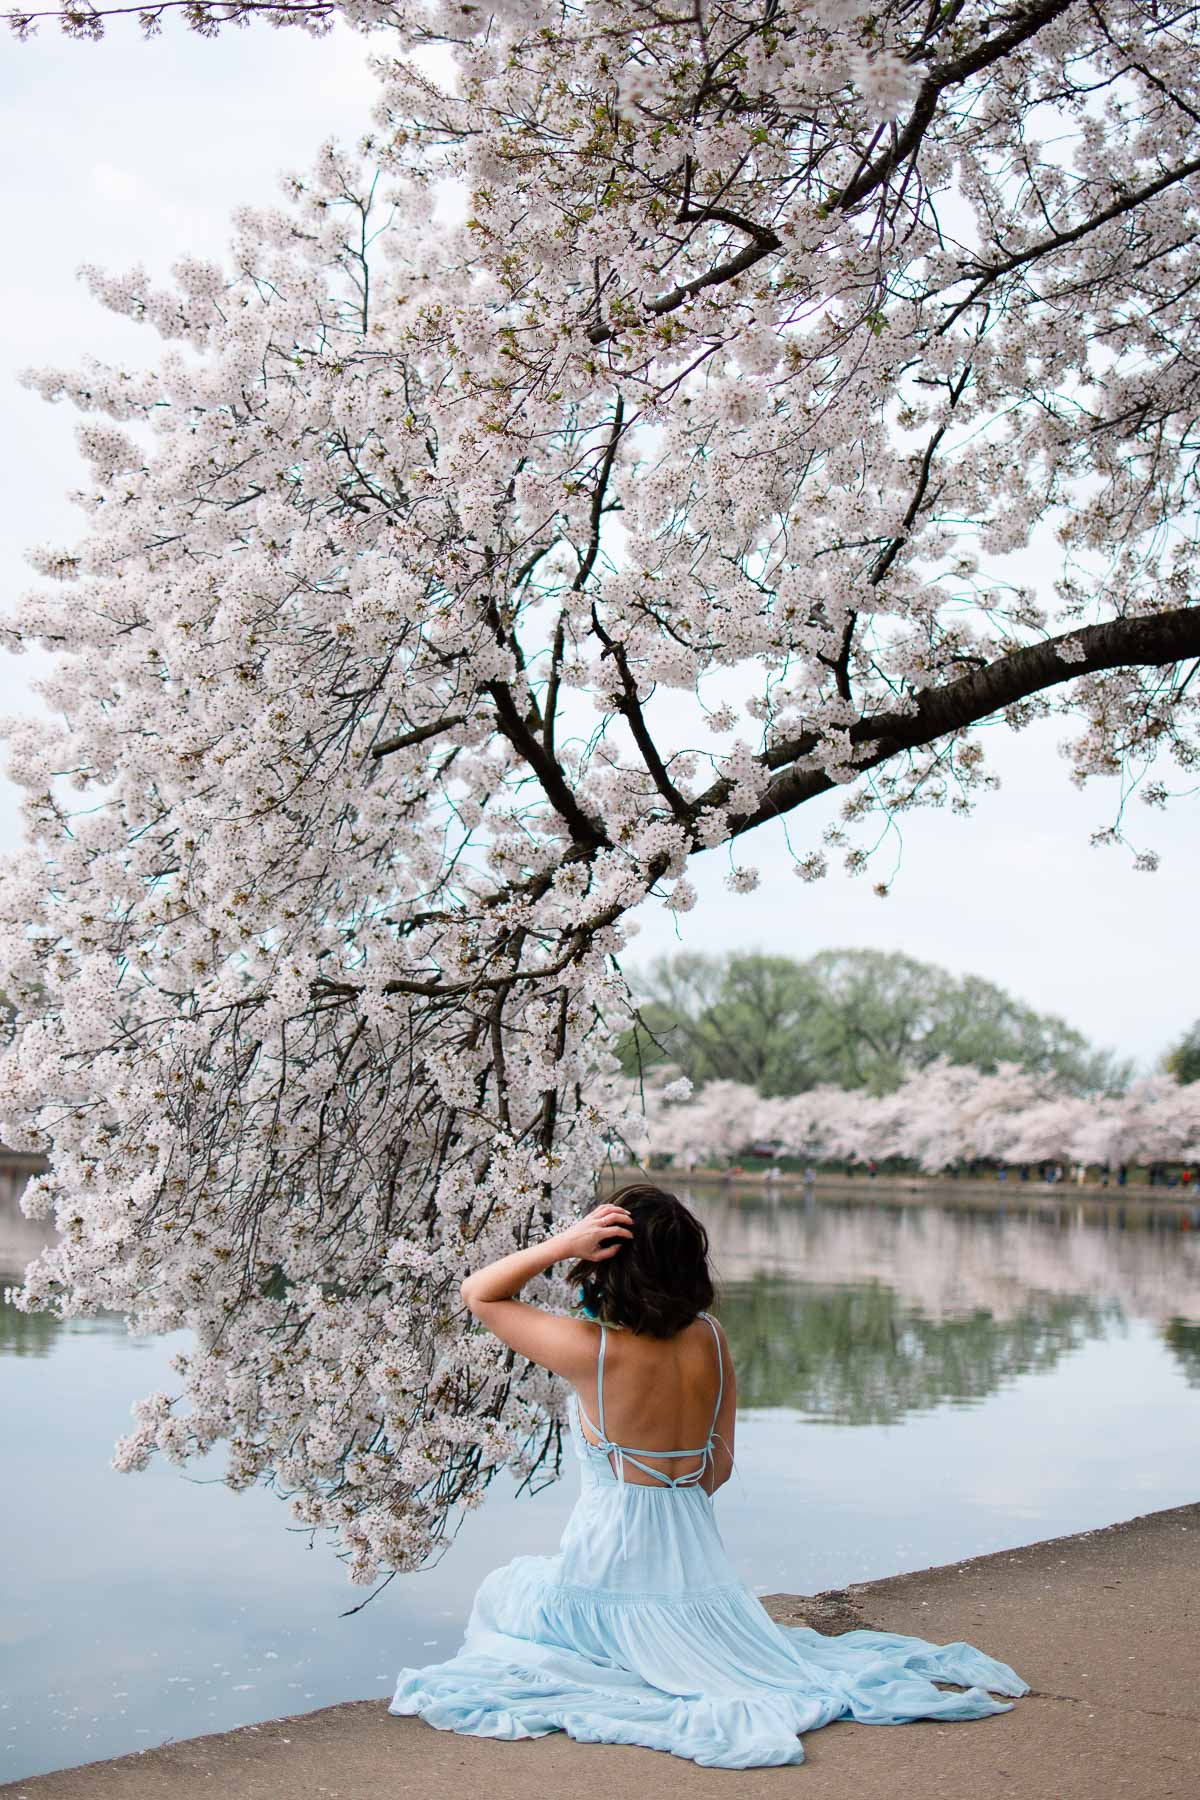 cherry blossoms dc update 2021